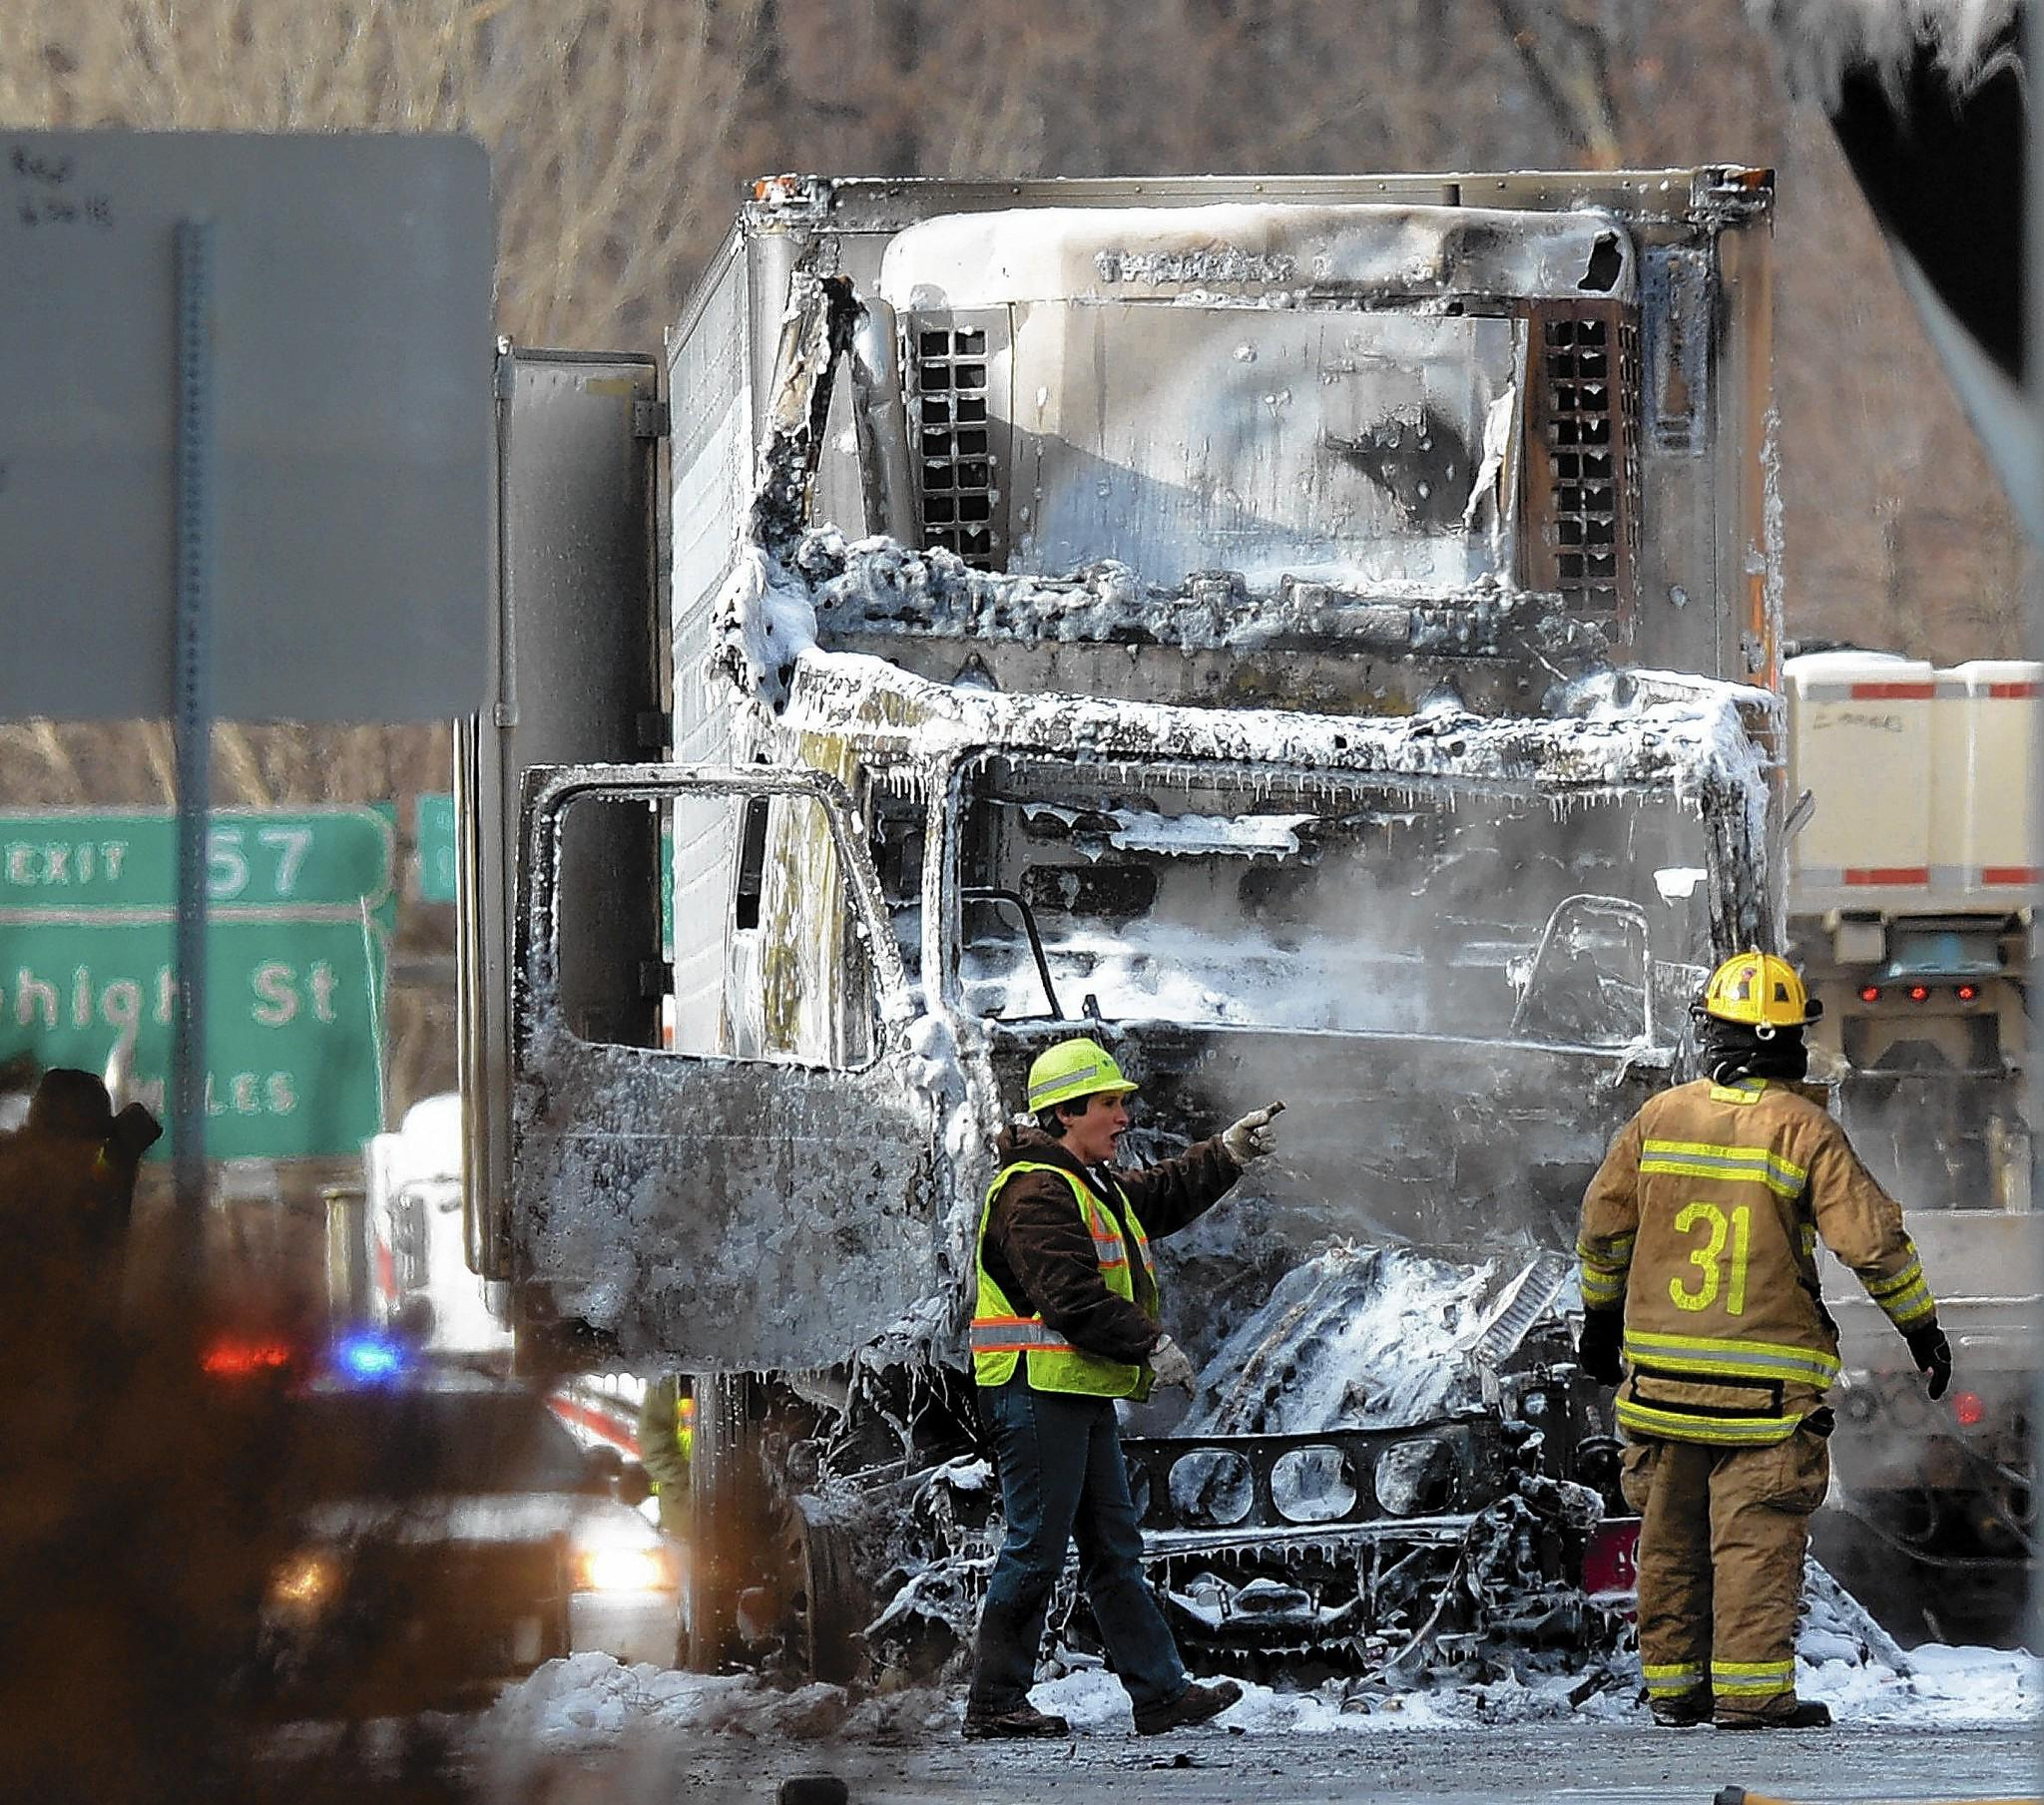 Firefighters inspect the two tractor-trailers that crashed Wednesday morning on Interstate 78 in Salisbury Township. One truck cab, above, broke into flames when it rear-ended the other big rig. A passer-by helped pull the trucker and his passenger out. Police said no one had life-threatening injuries.